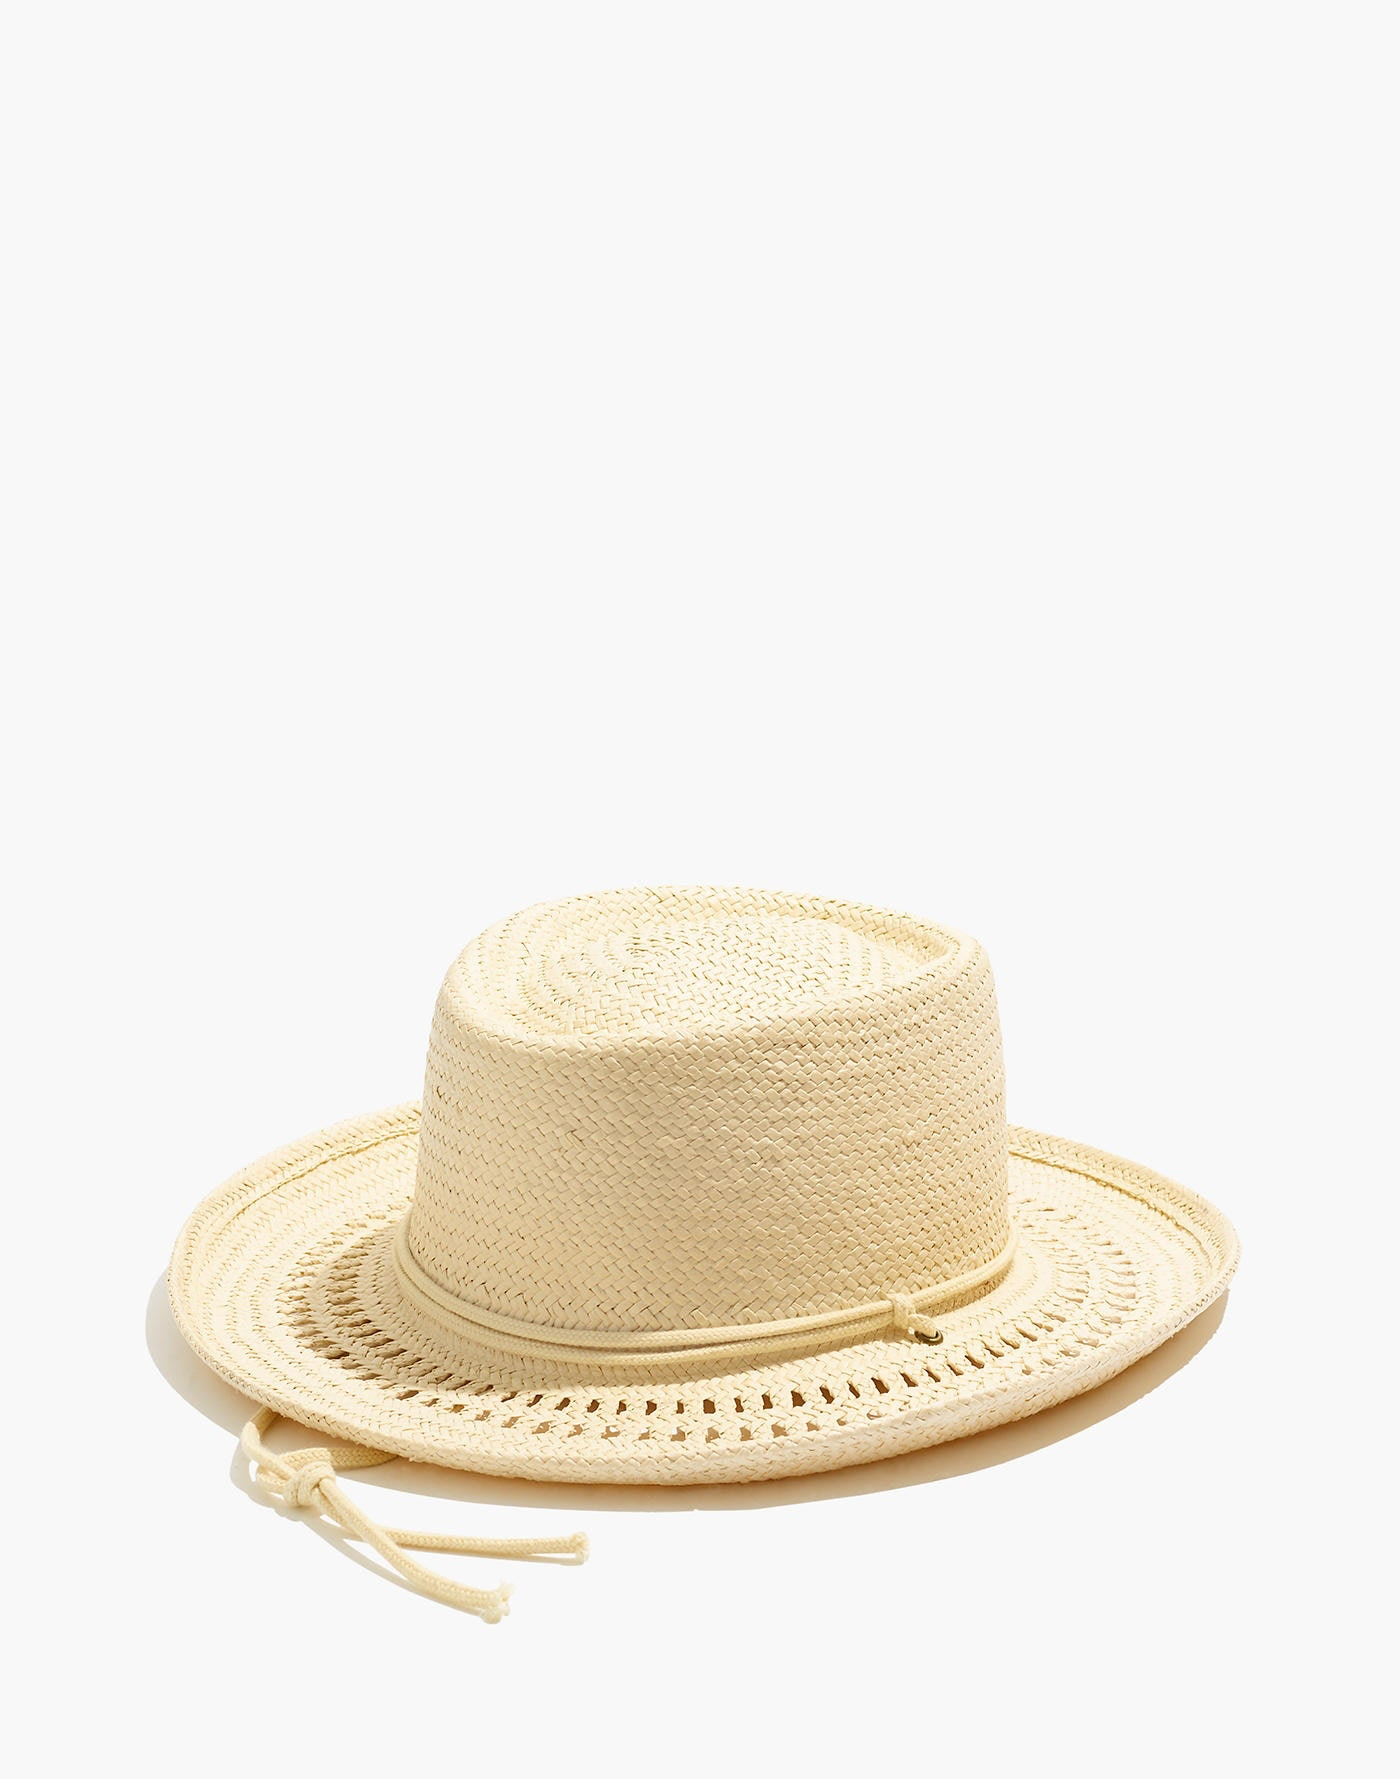 a9d994cc7 The Best Hats For Summer & Your Instagram Feed, According To The Experts